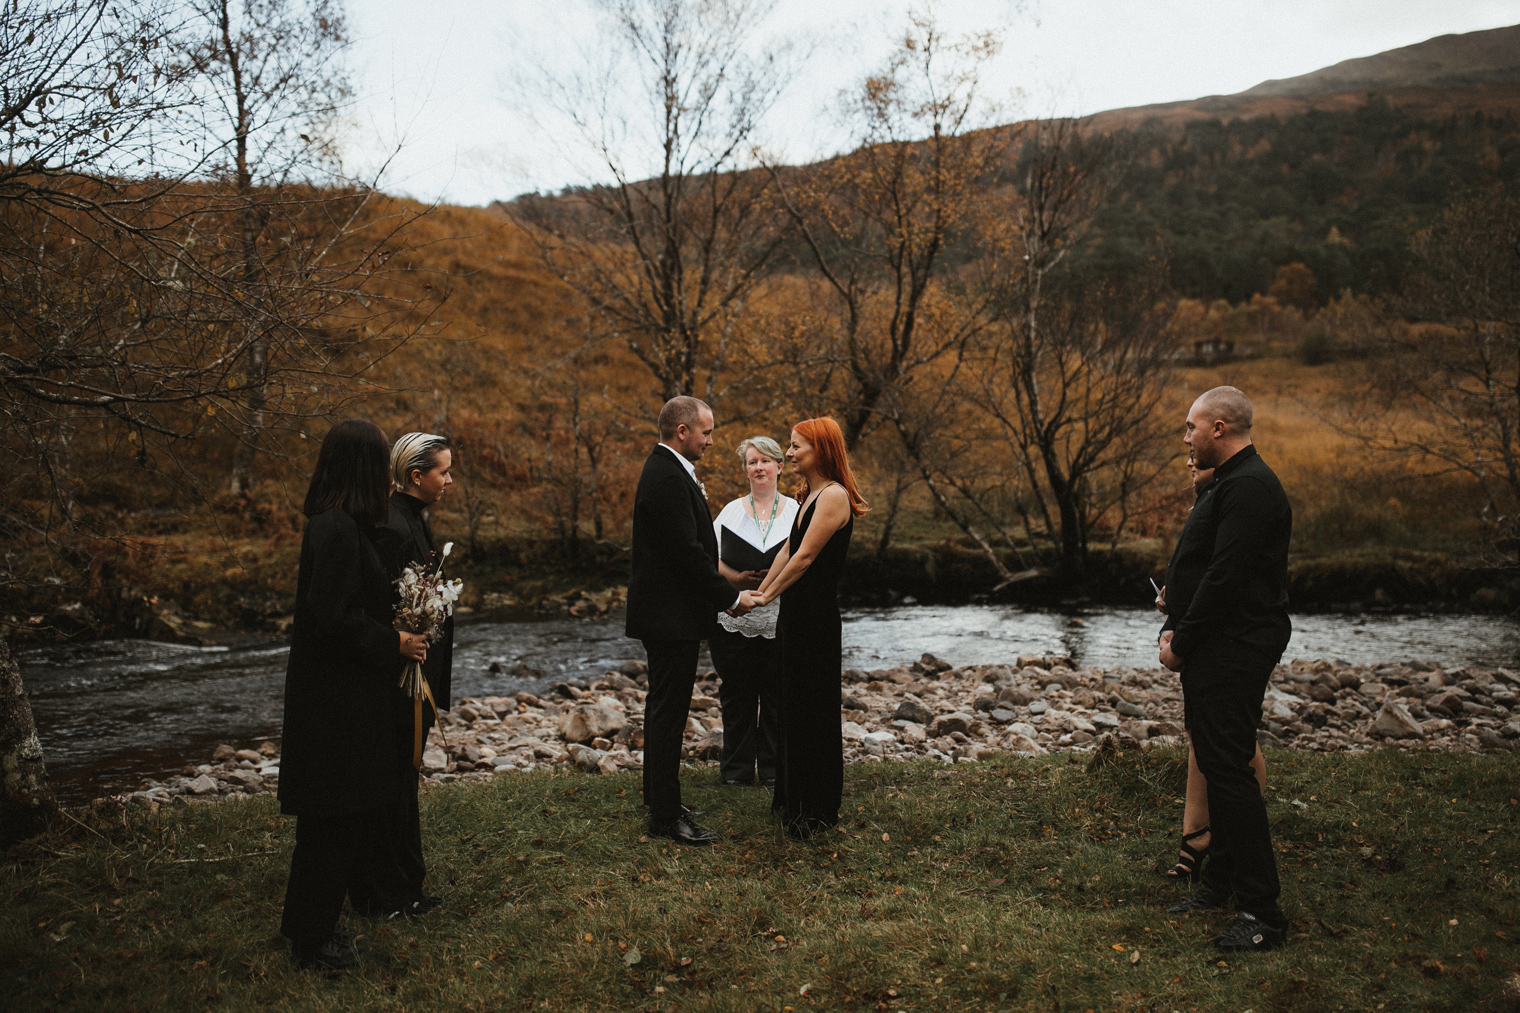 Wedding Ceremony in Glencoe